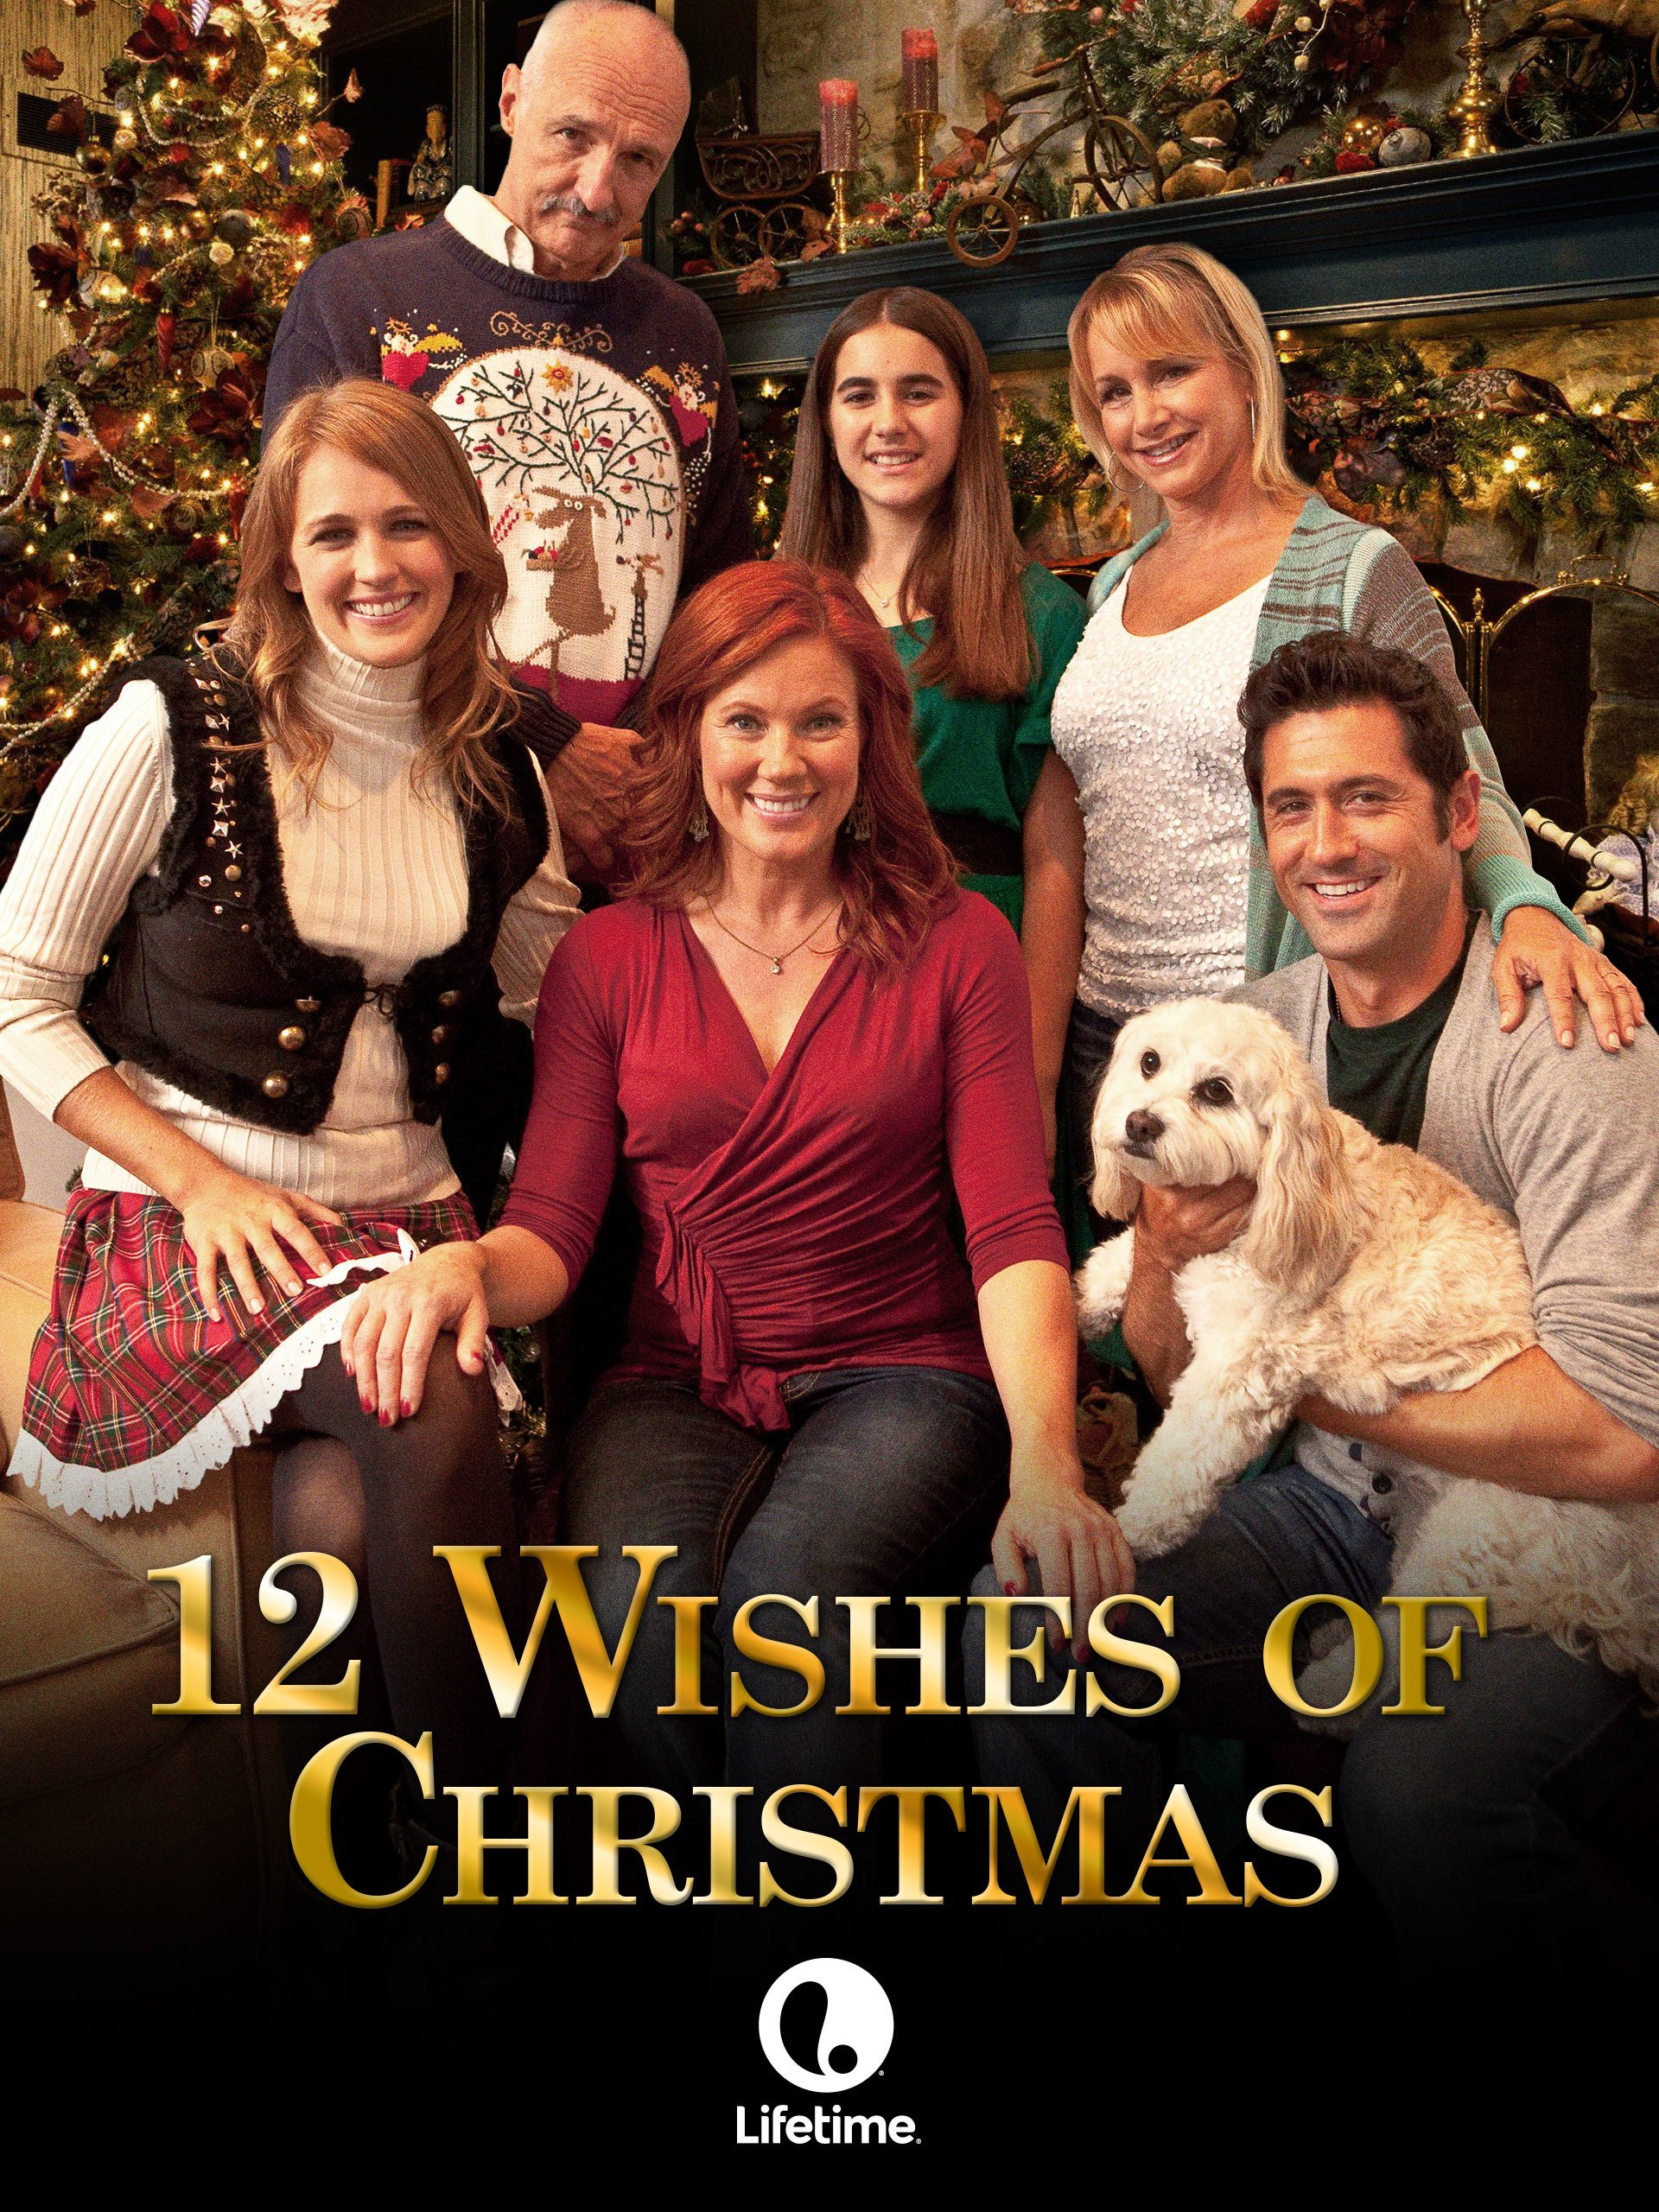 amazoncom 12 wishes of christmas hybrid llc - 12 Wishes Of Christmas